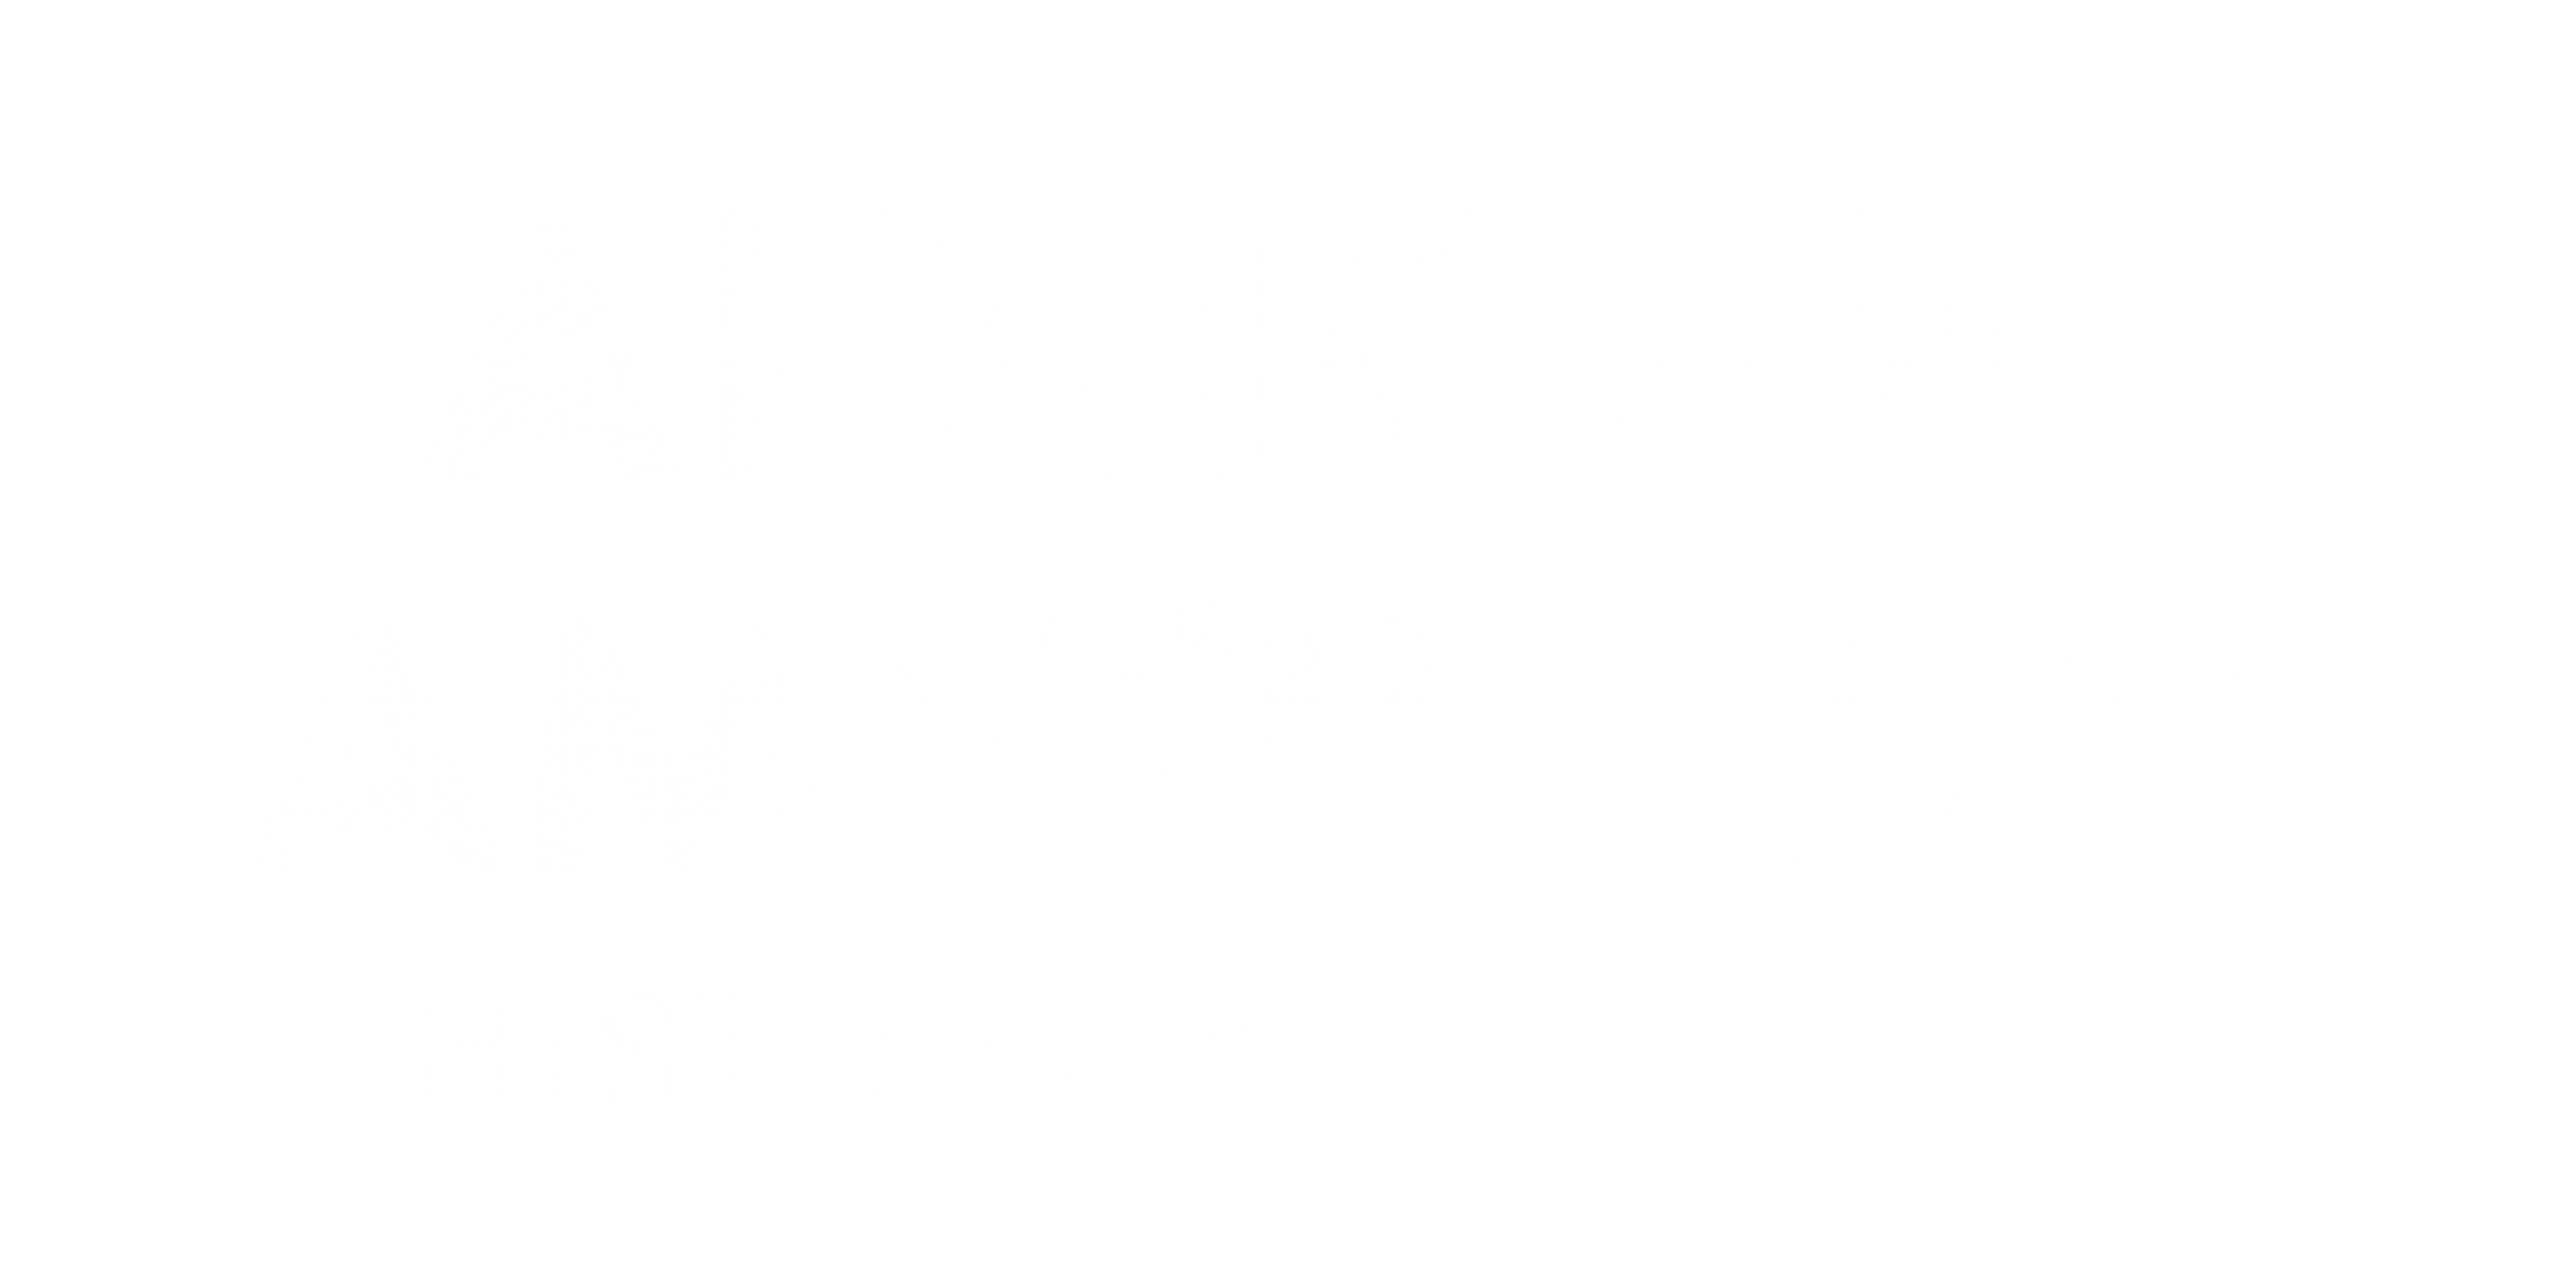 African American History and Culture word mark logo in white